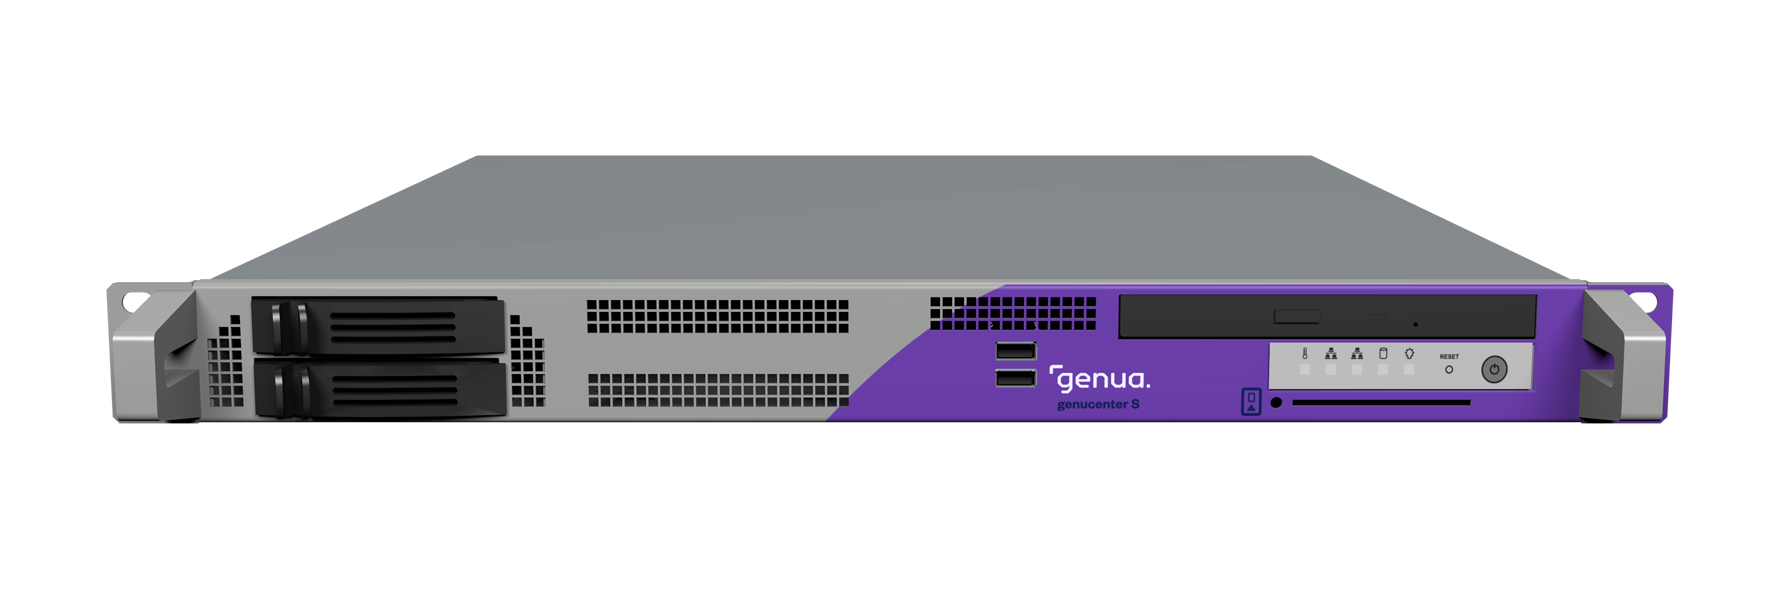 genua genucenter s